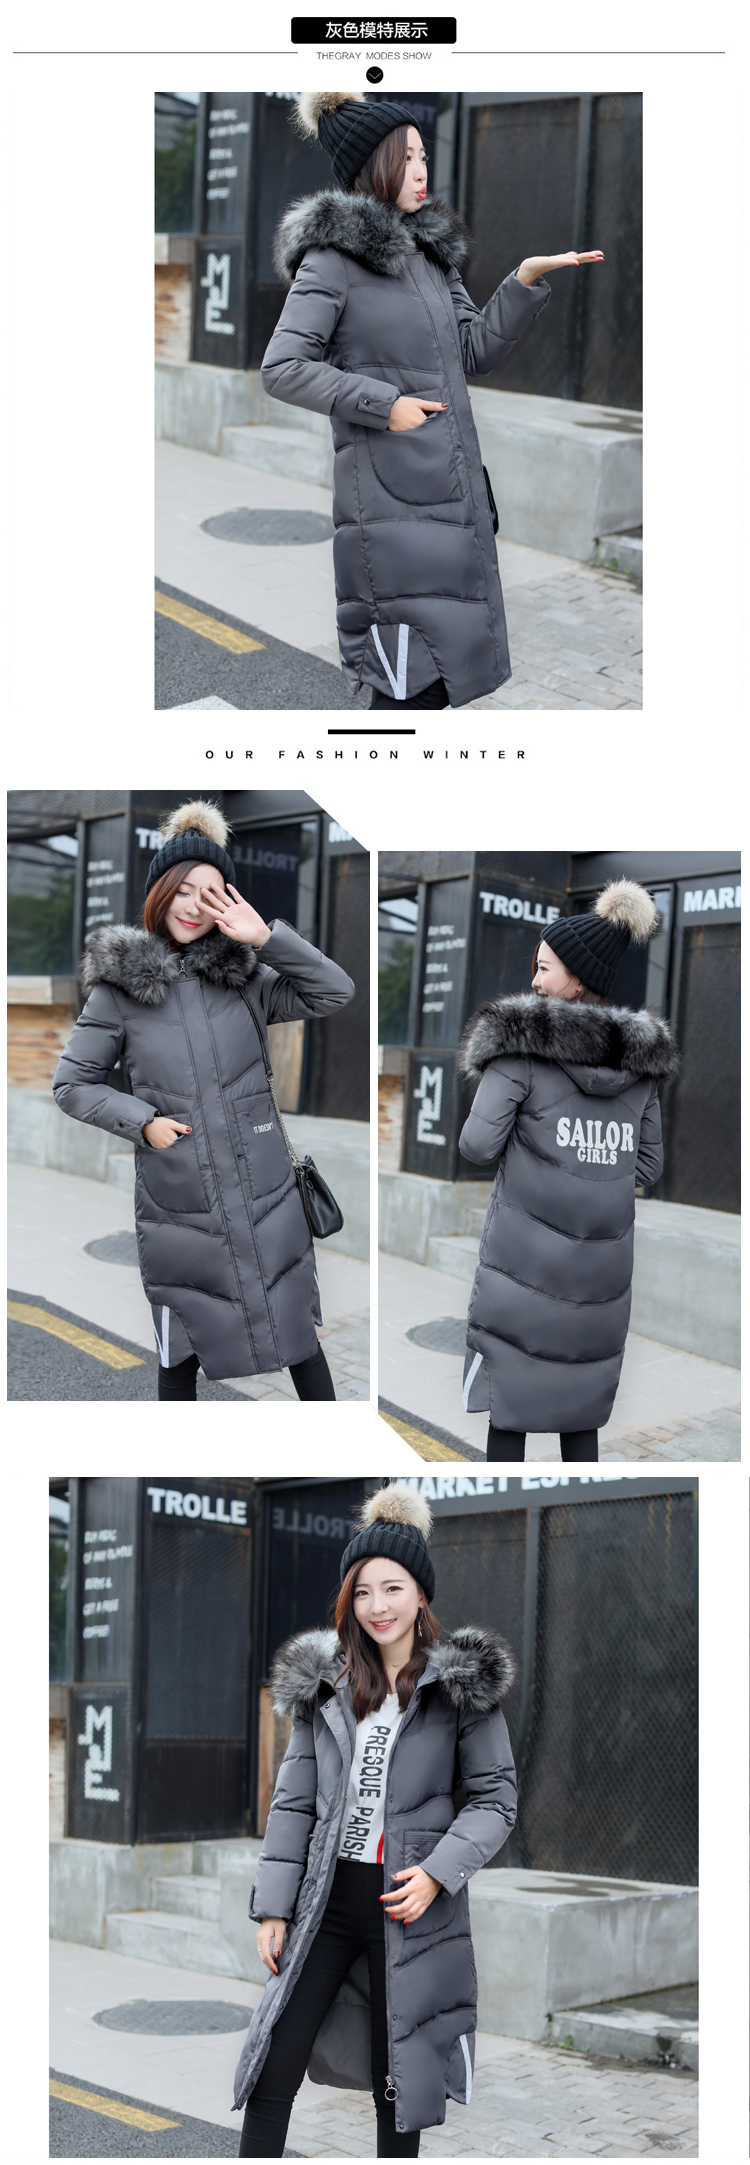 The new feather women's cotton coat thick large hooded cotton-padded jacket dress long winter warm coat for women